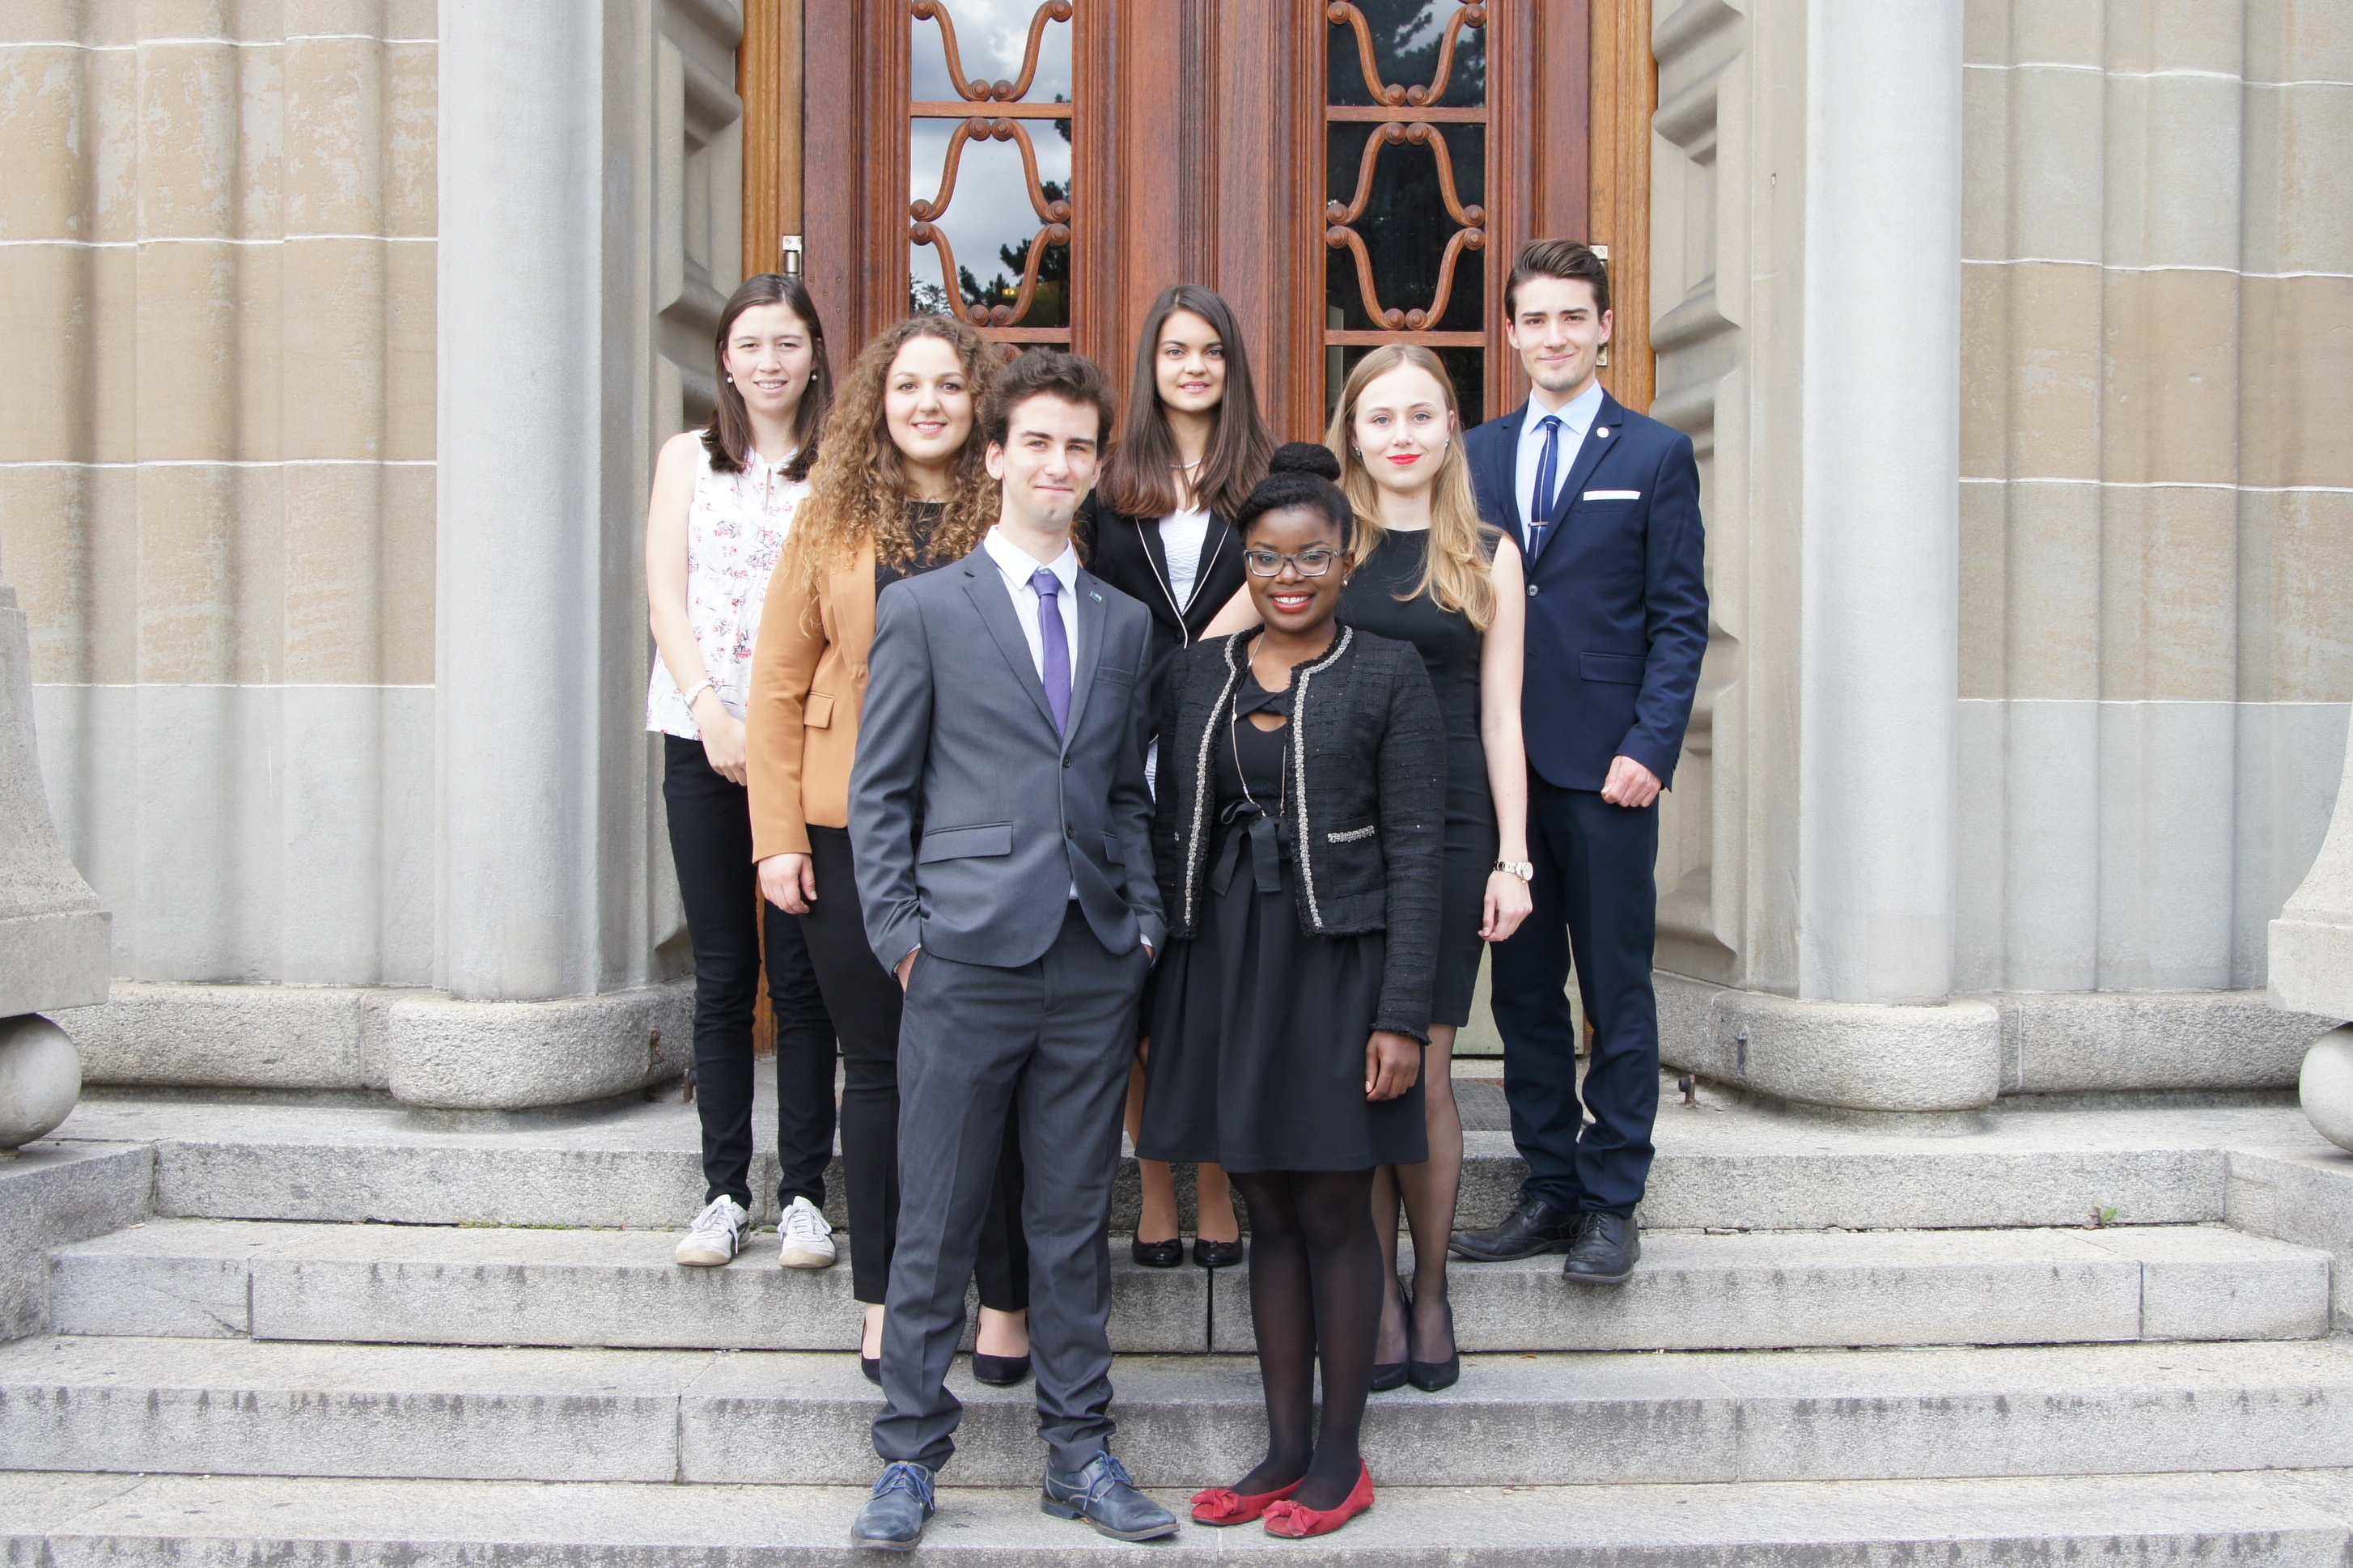 Four Political Science Students Founded The Association Mun Team University  Of Zurich In 2007 Toanize A Delegation To The Harvard Worldmun 2008 In